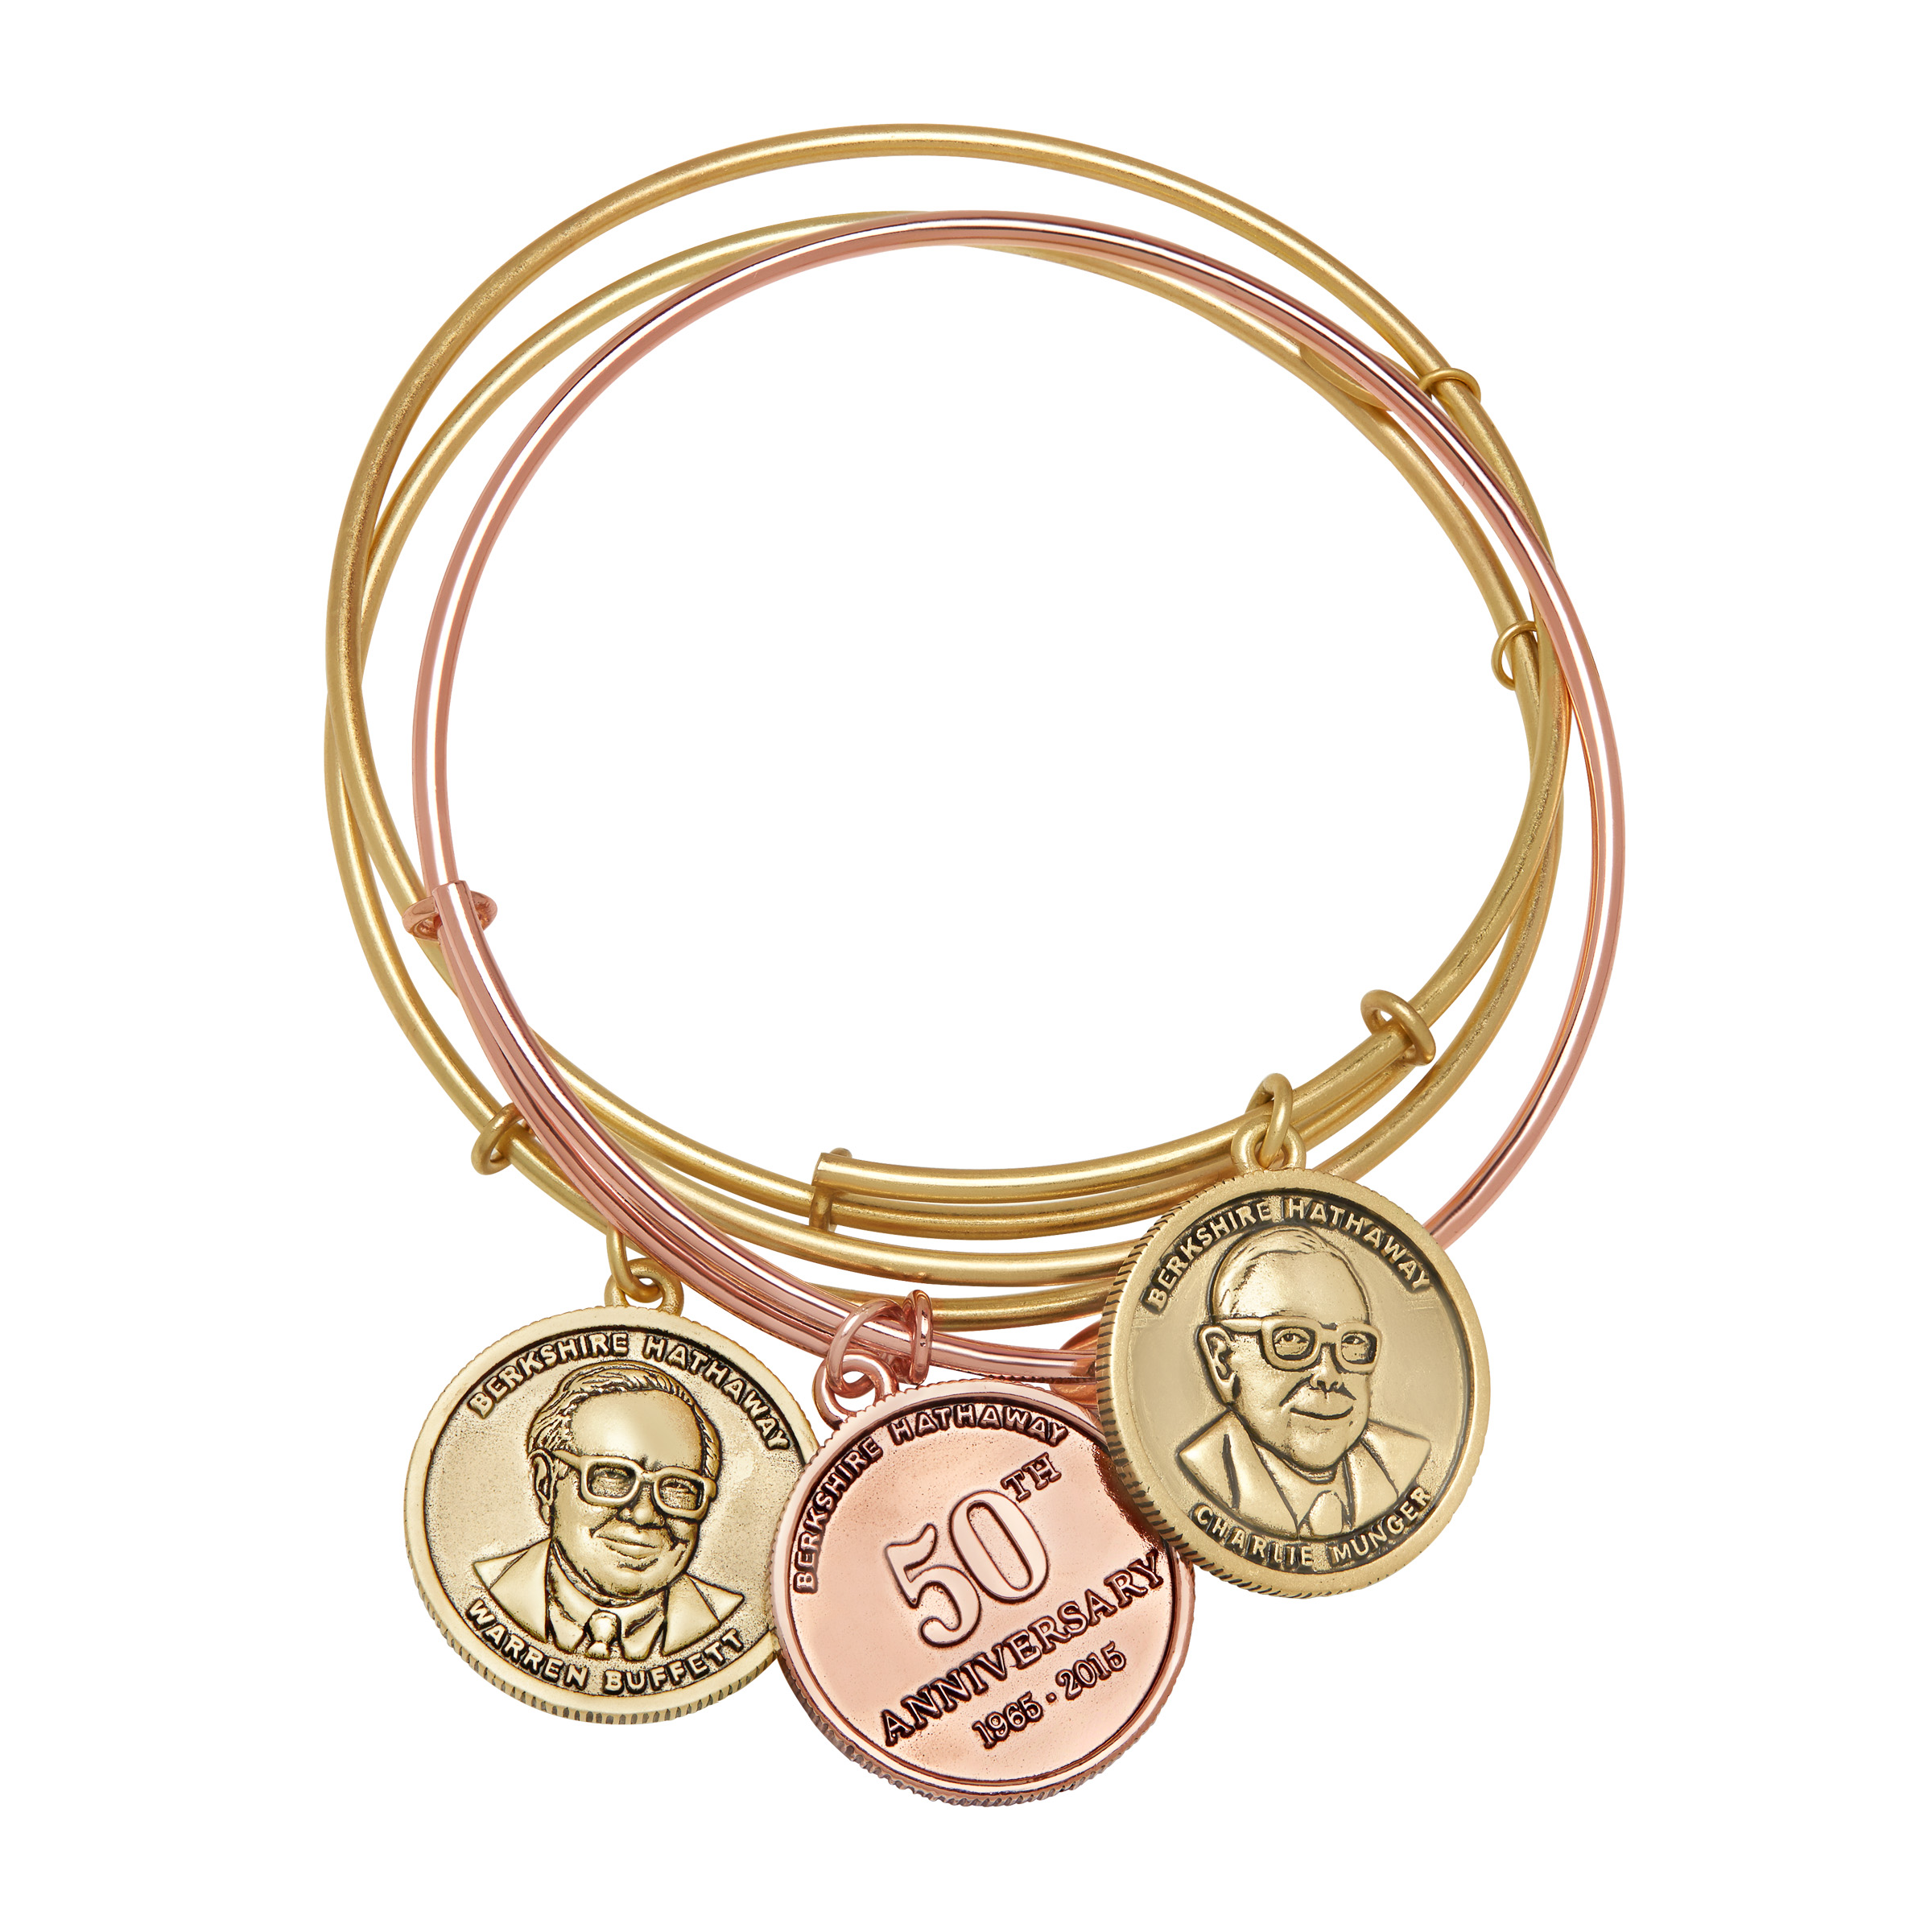 Chrysalis Berkshire Hathaway Bangle Bracelet Set in 14kt Rose & Yellow Gold-Plated Brass